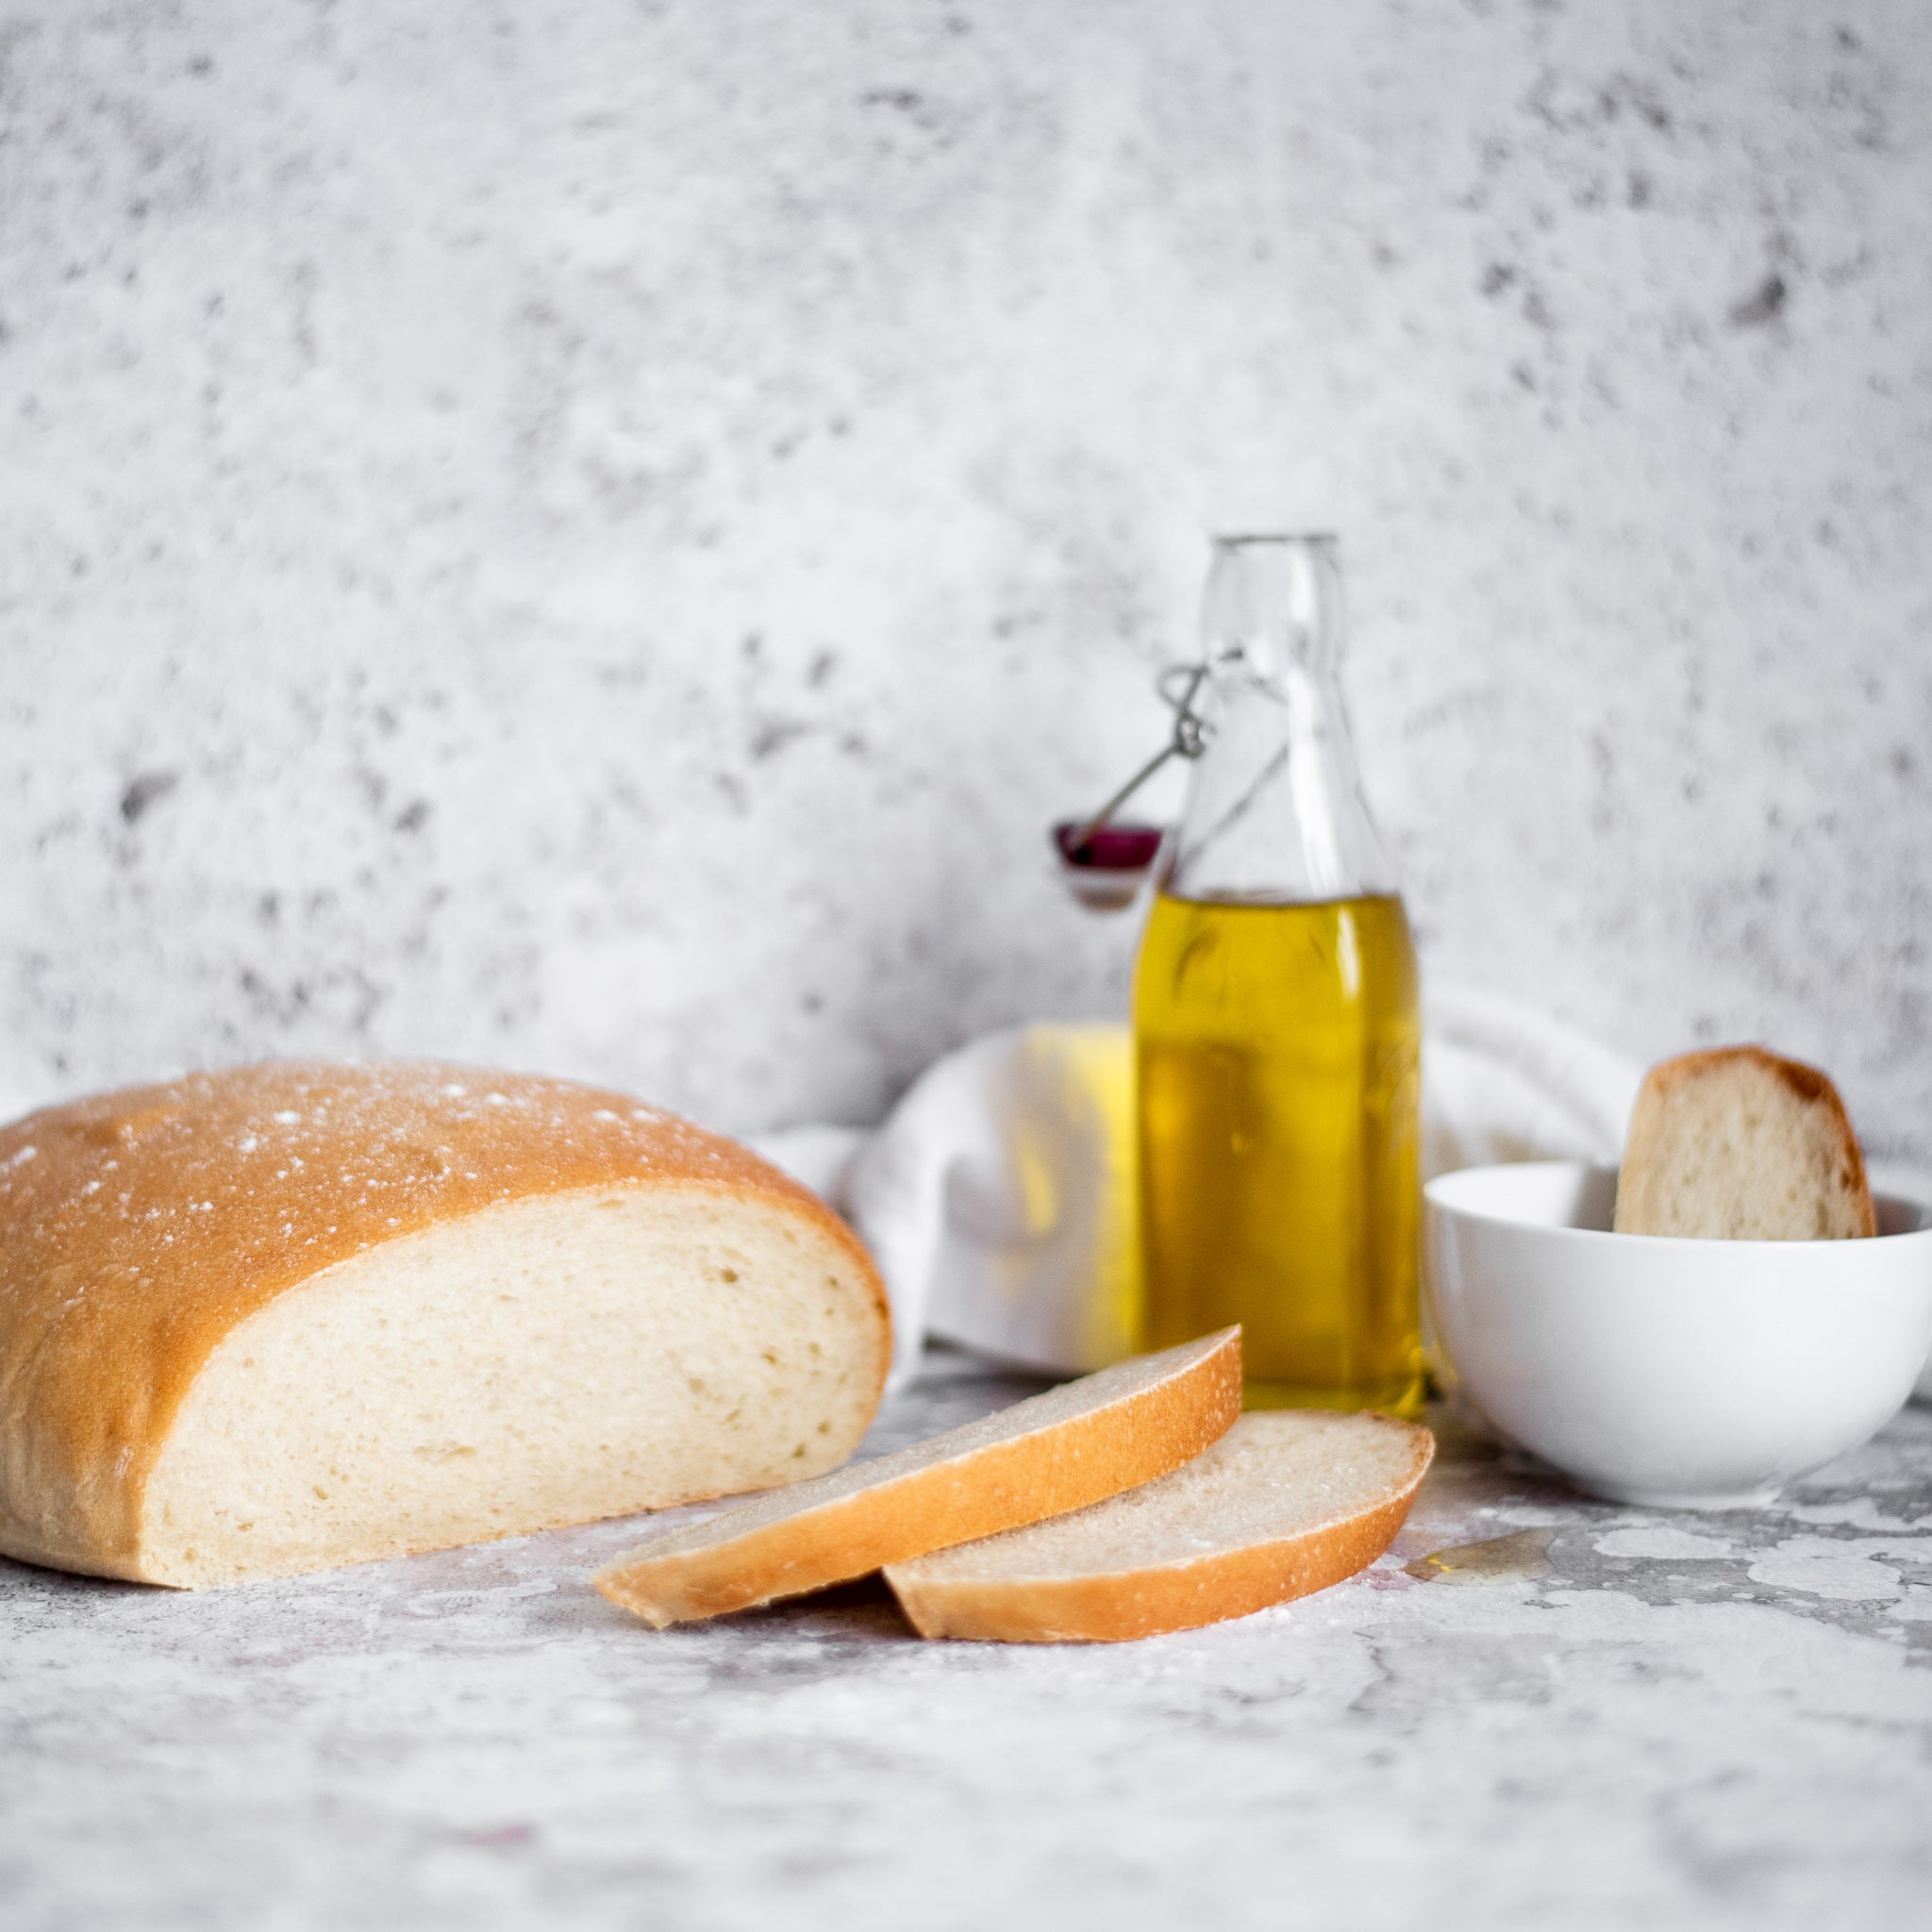 Allinson-s-Olive-Oil-Bread-11-Baking-Mad-5-(1).jpg